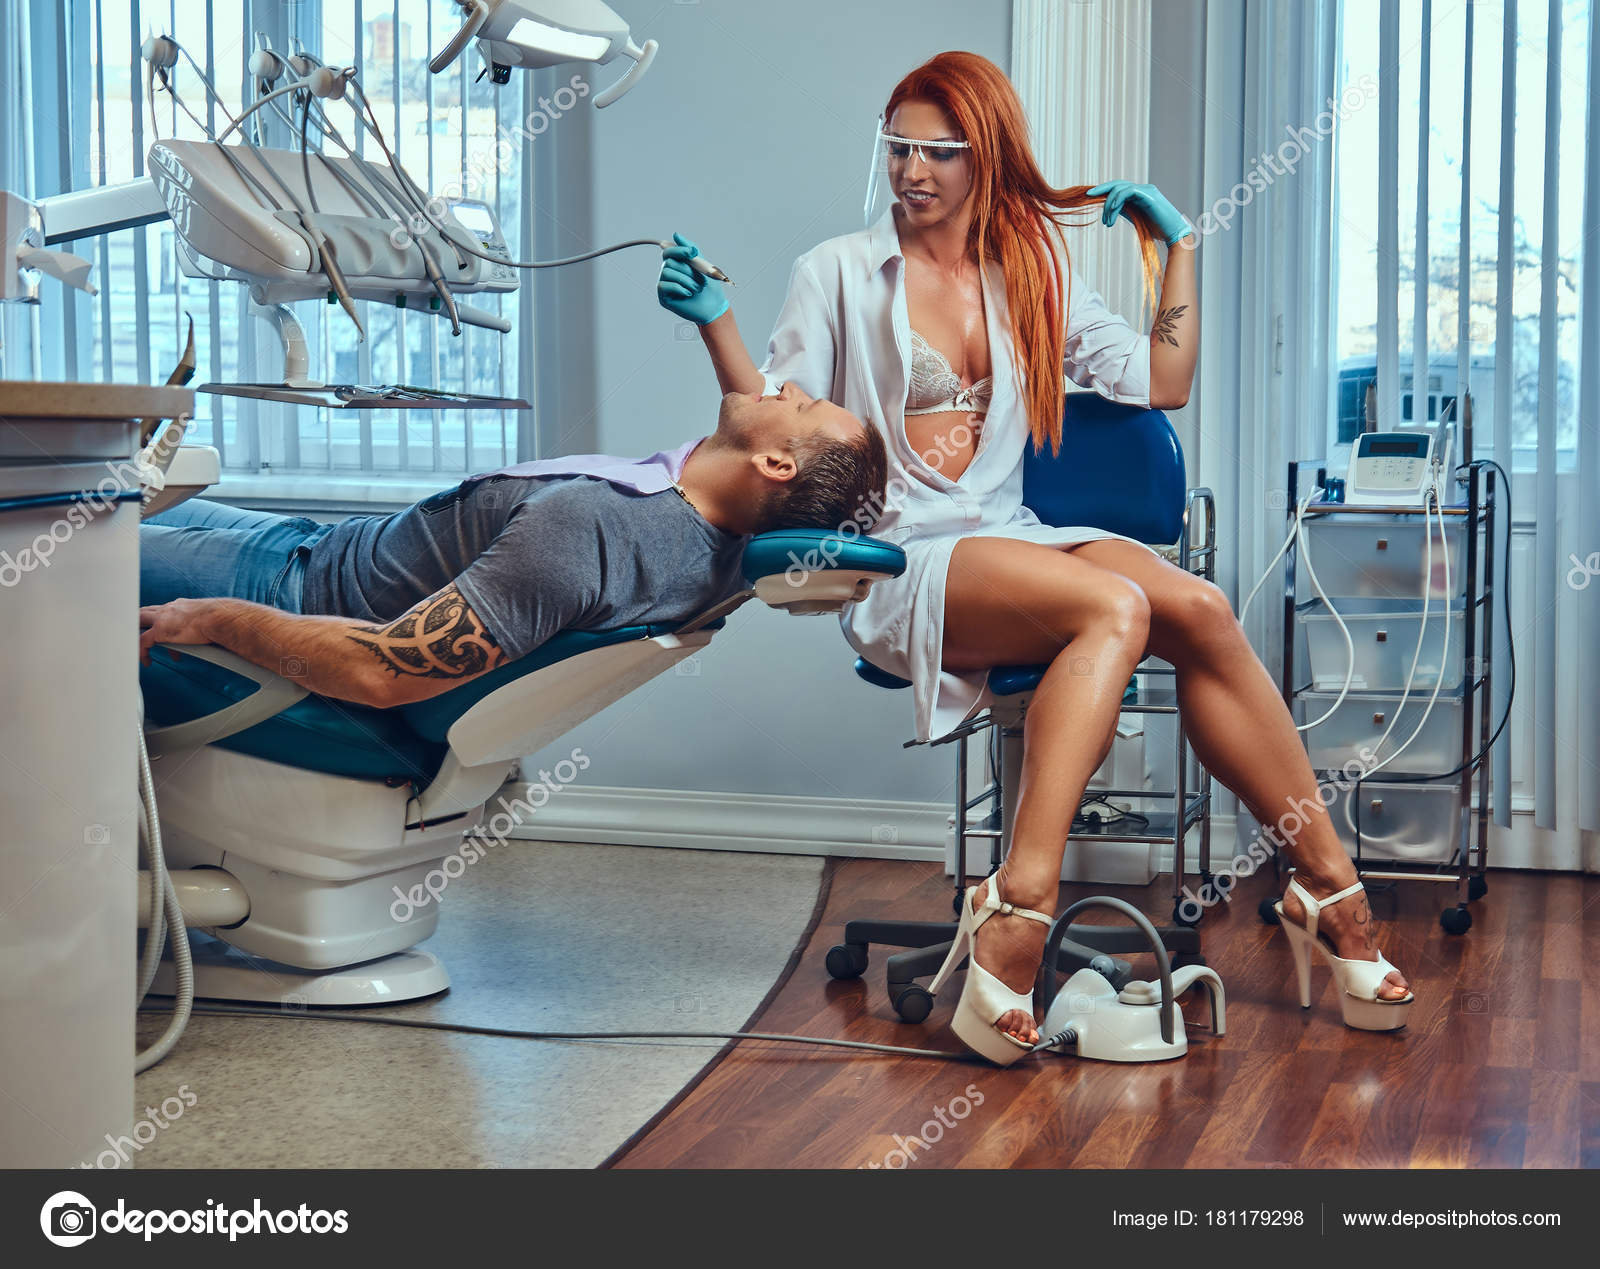 hot office pic. A Sexy Hot Redhead Dentist Woman, At Work In The Office, Taking Care Of Her Patient. \u2014 Photo By Fxquadro Office Pic